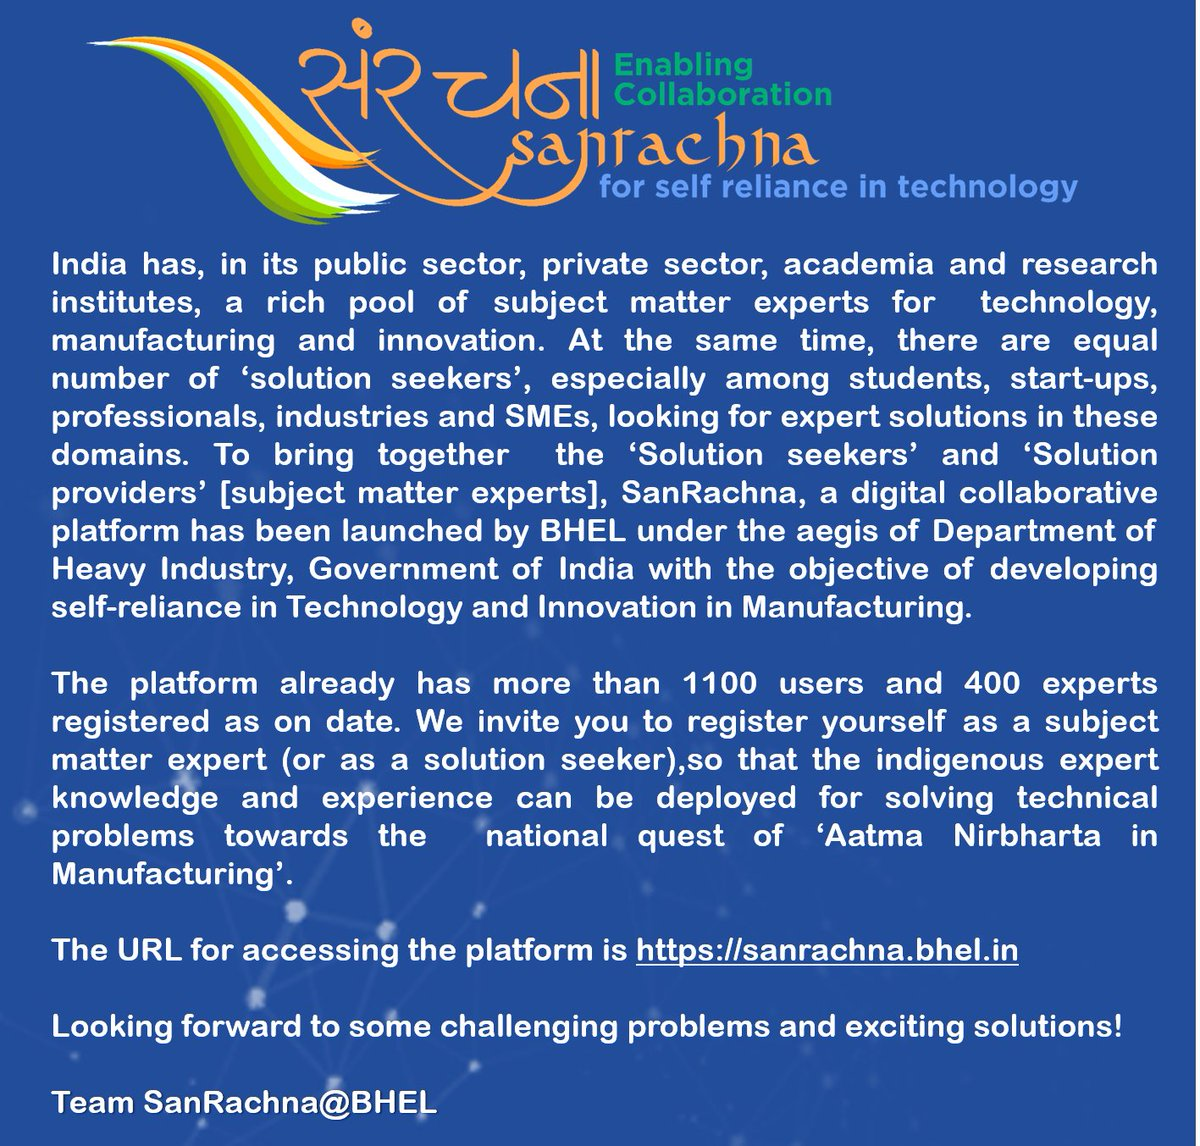 #SanRachna for self reliance in technology @heindustry   #bhel  @PrakashJavdekar @arjunrammeghwal @DPE_GoI @PIB_India @mygovindia https://t.co/xCenHRRLD1